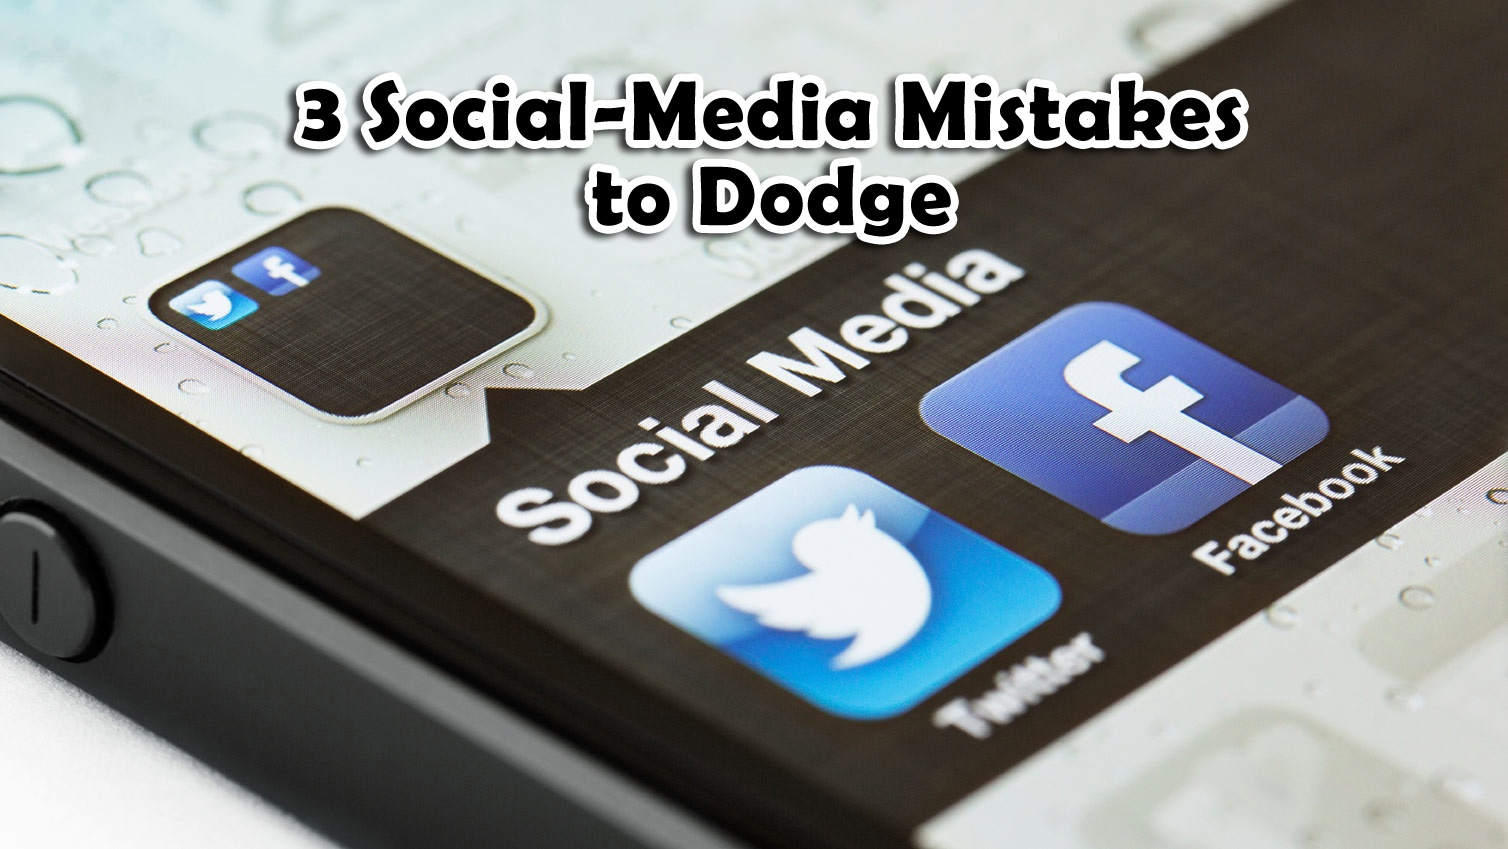 3 Social-Media Mistakes to Dodge